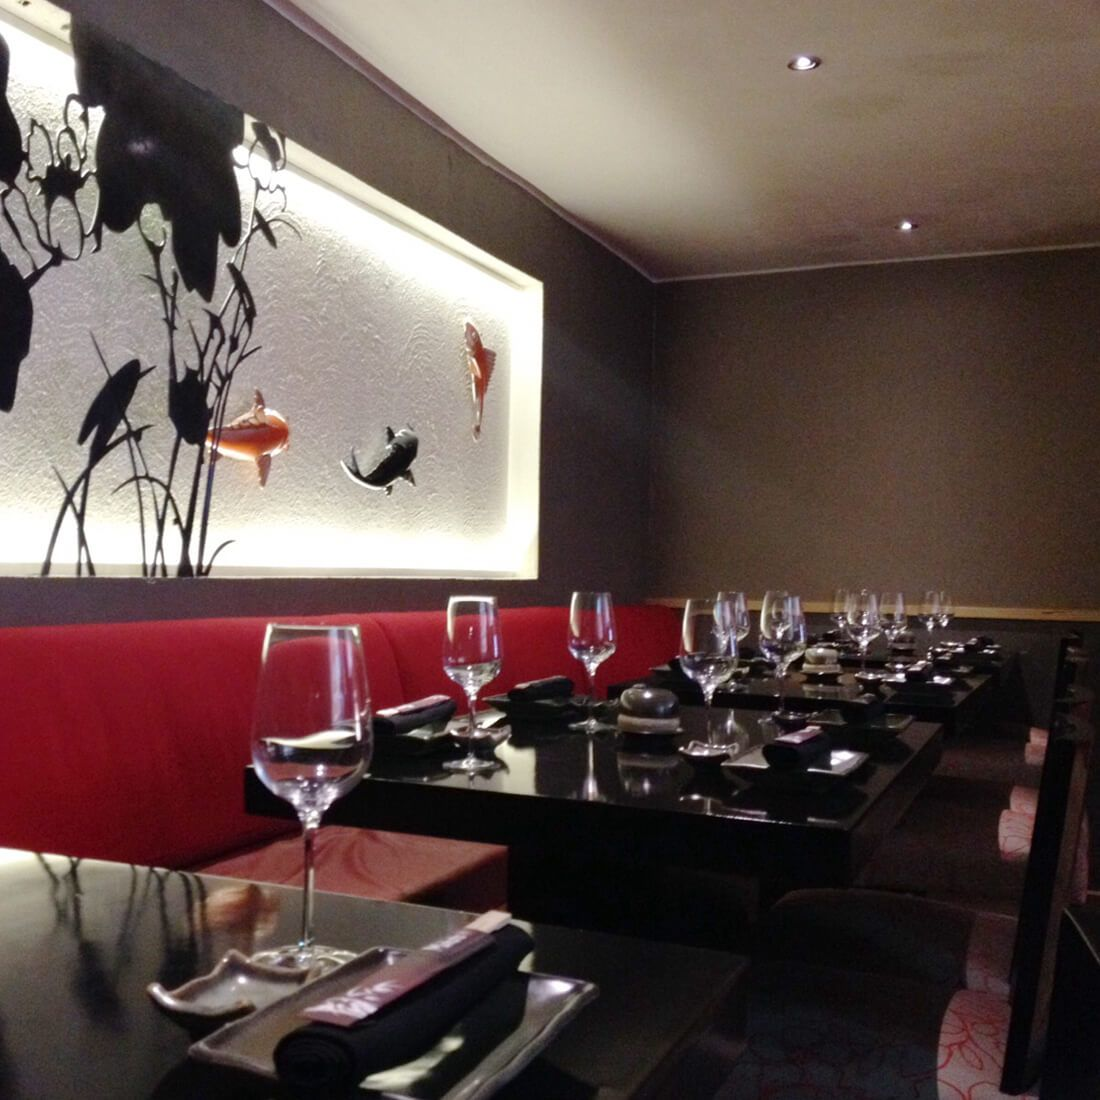 MAKOTO MIRAFLORES Restaurant - and Peruvian Food NIKKEI AND JAPANESE CUISINE - MIRAFLORES - MESA 24/7 Guide | LIMA - Peru